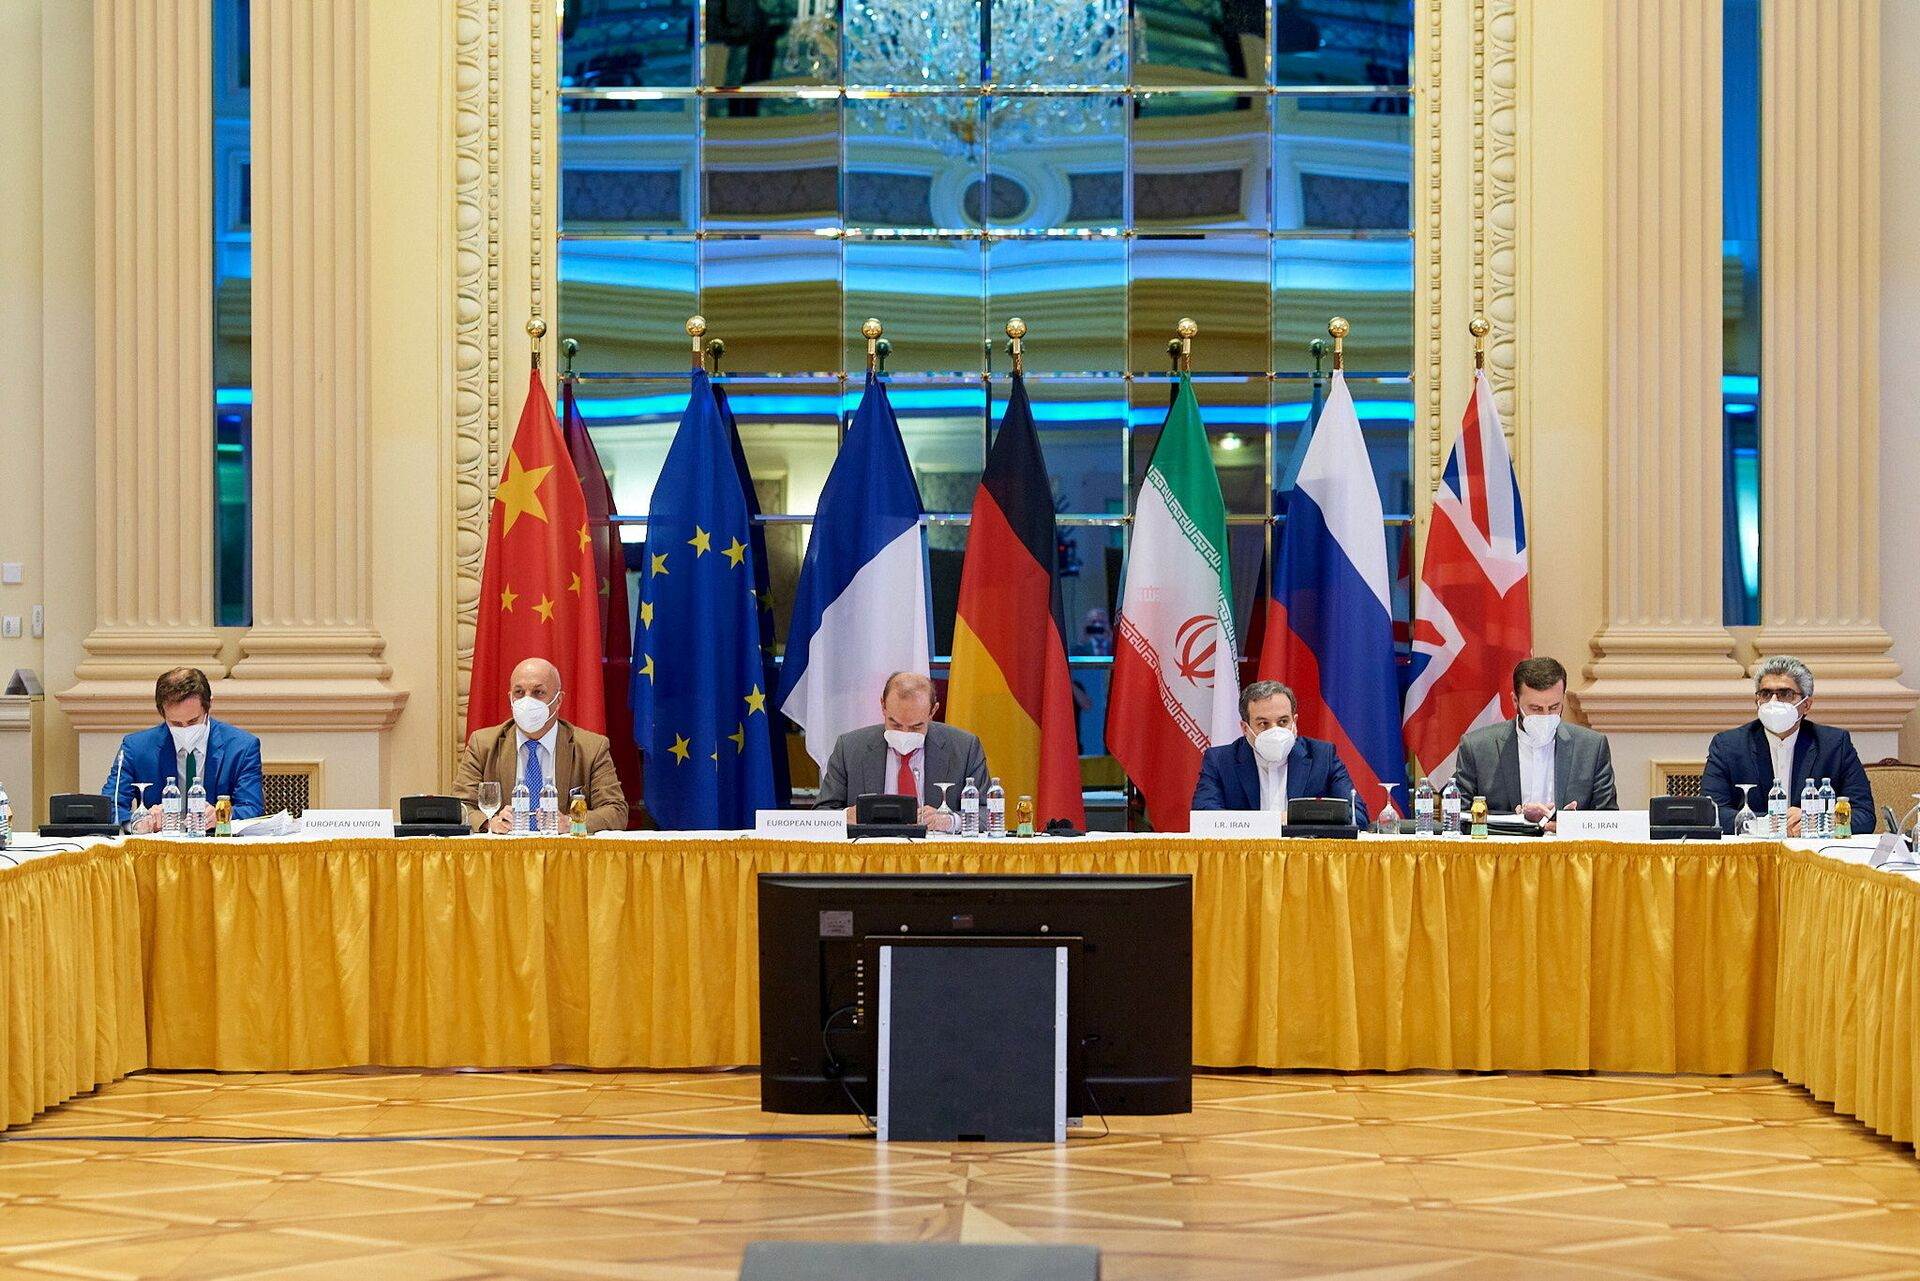 European External Action Service (EEAS) Deputy Secretary General Enrique Mora and Iranian Deputy at Ministry of Foreign Affairs Abbas Araghchi wait for the start of talks on reviving the 2015 Iran nuclear deal in Vienna, Austria June 20, 2021 - Sputnik International, 1920, 07.09.2021